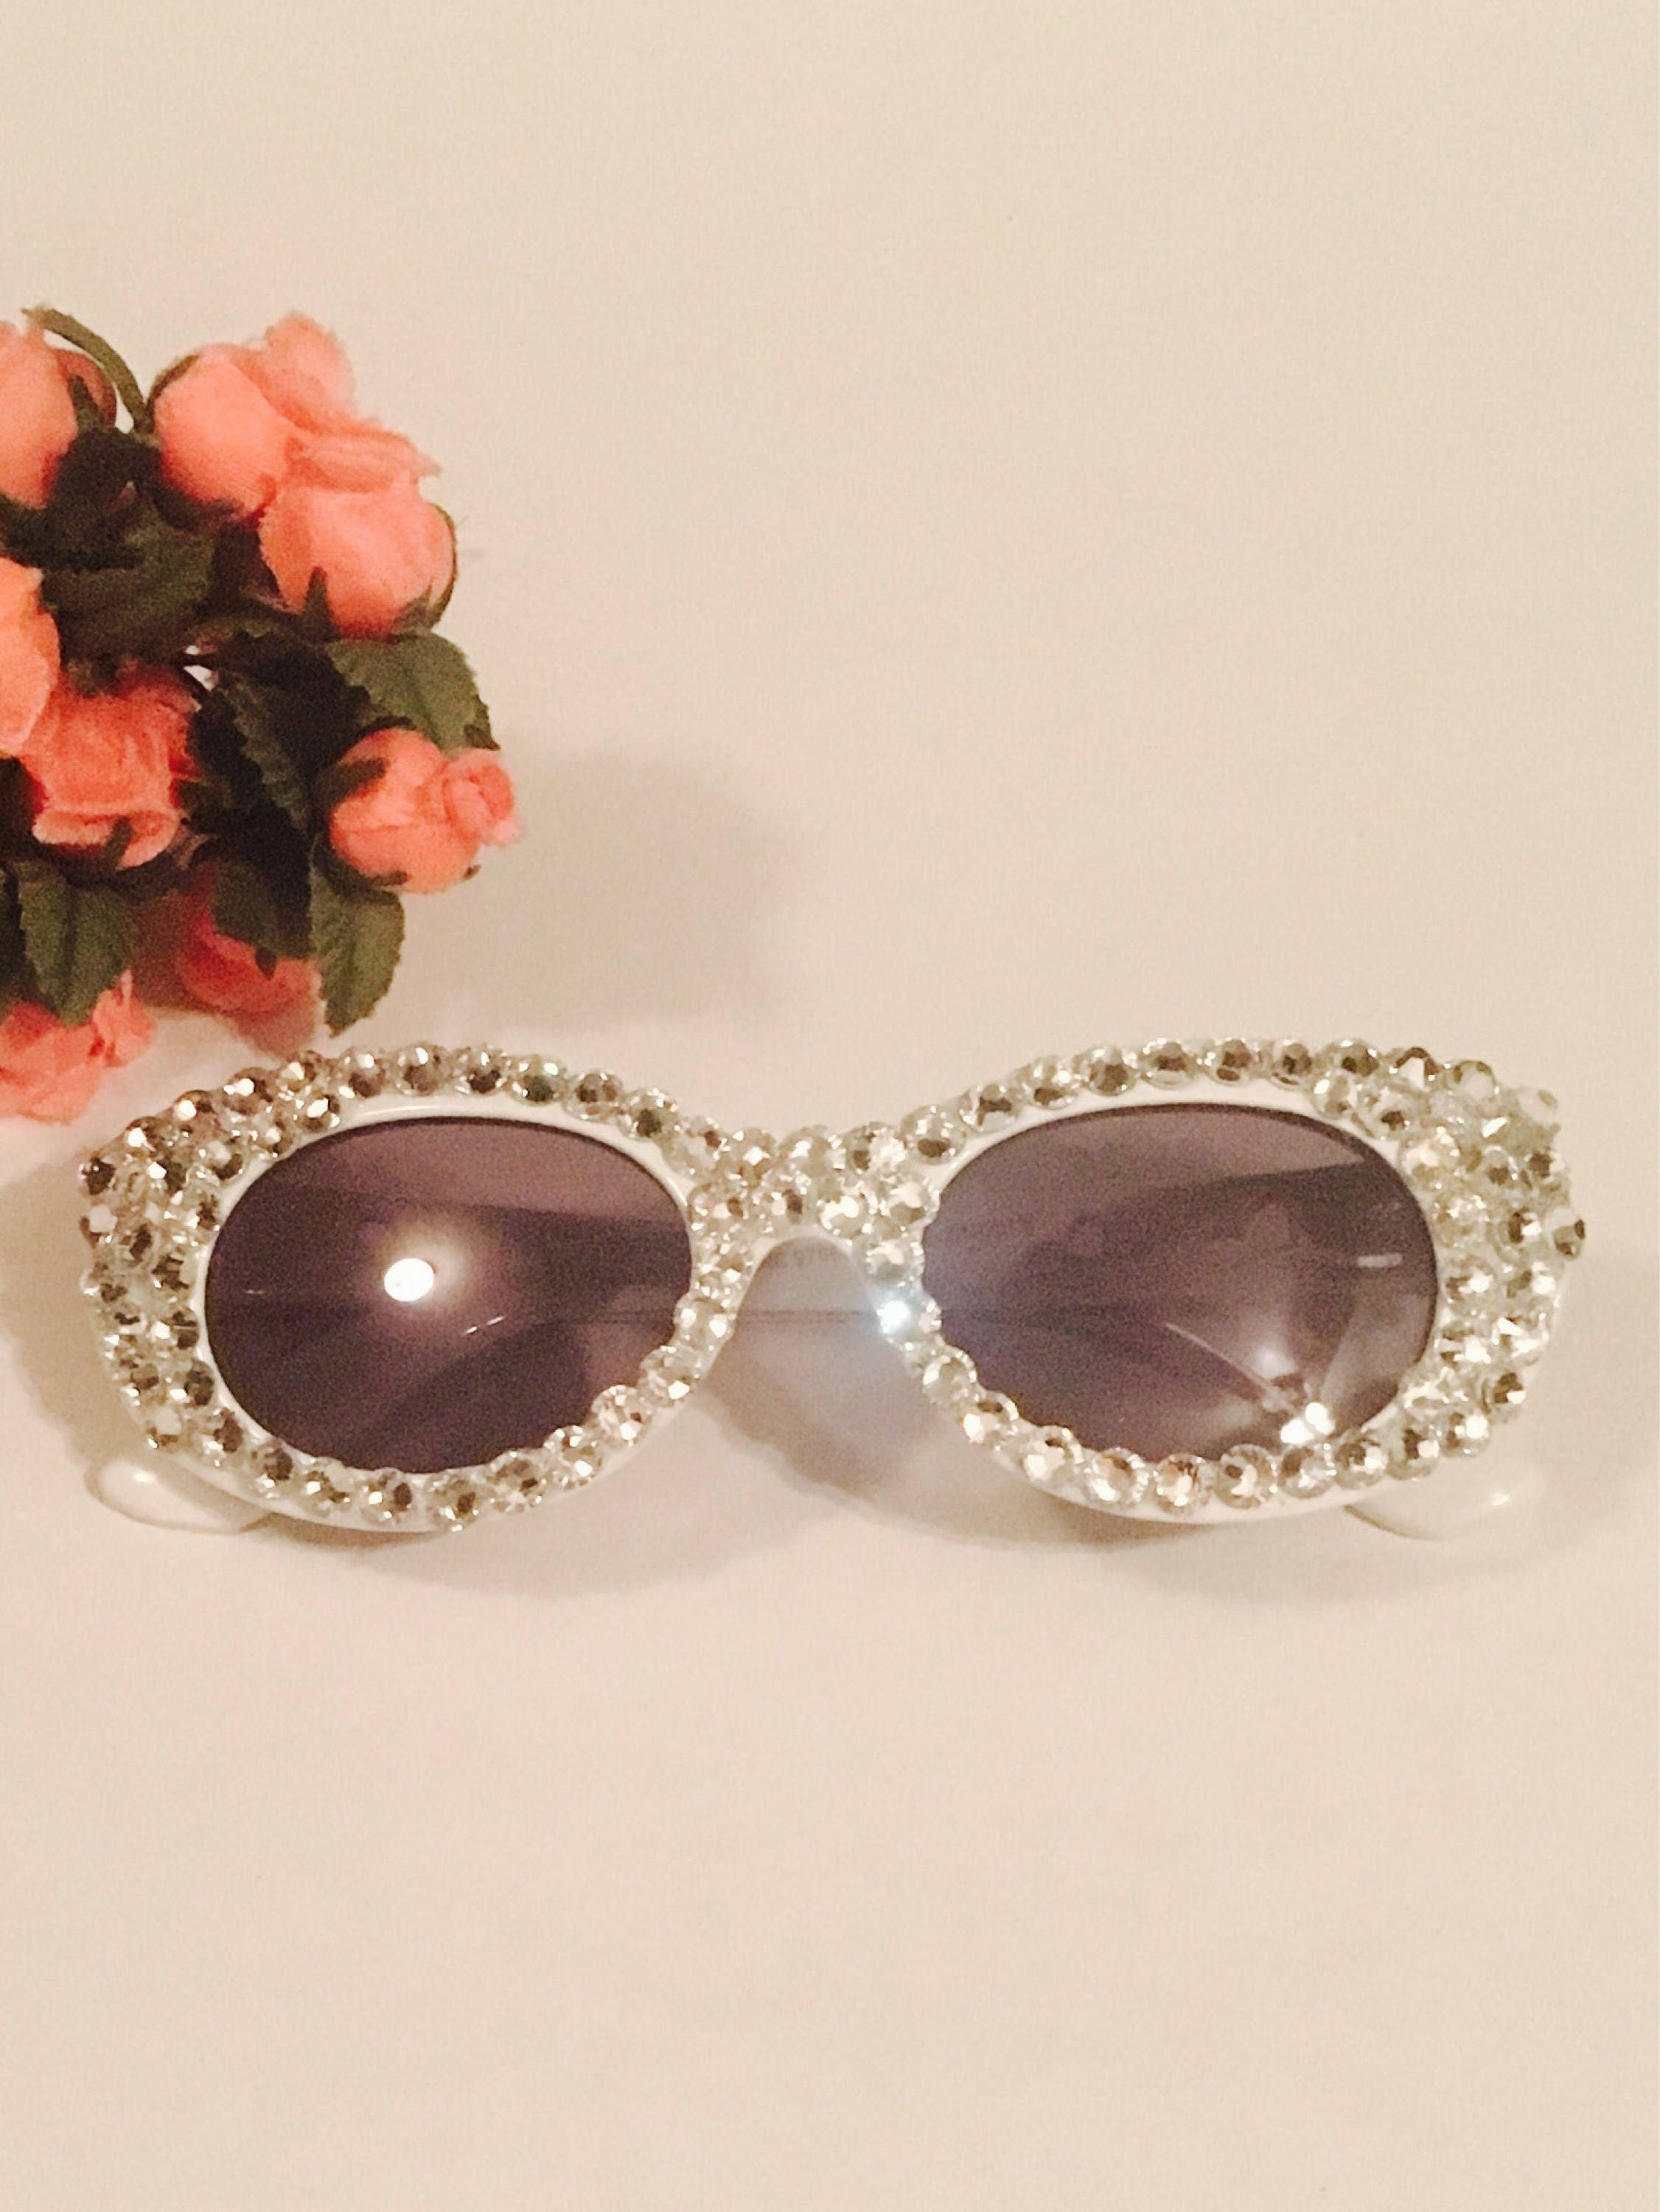 Little Girl Crystal Sunglassesbaby Sunglassesblinged Out # Muebles Sunnies